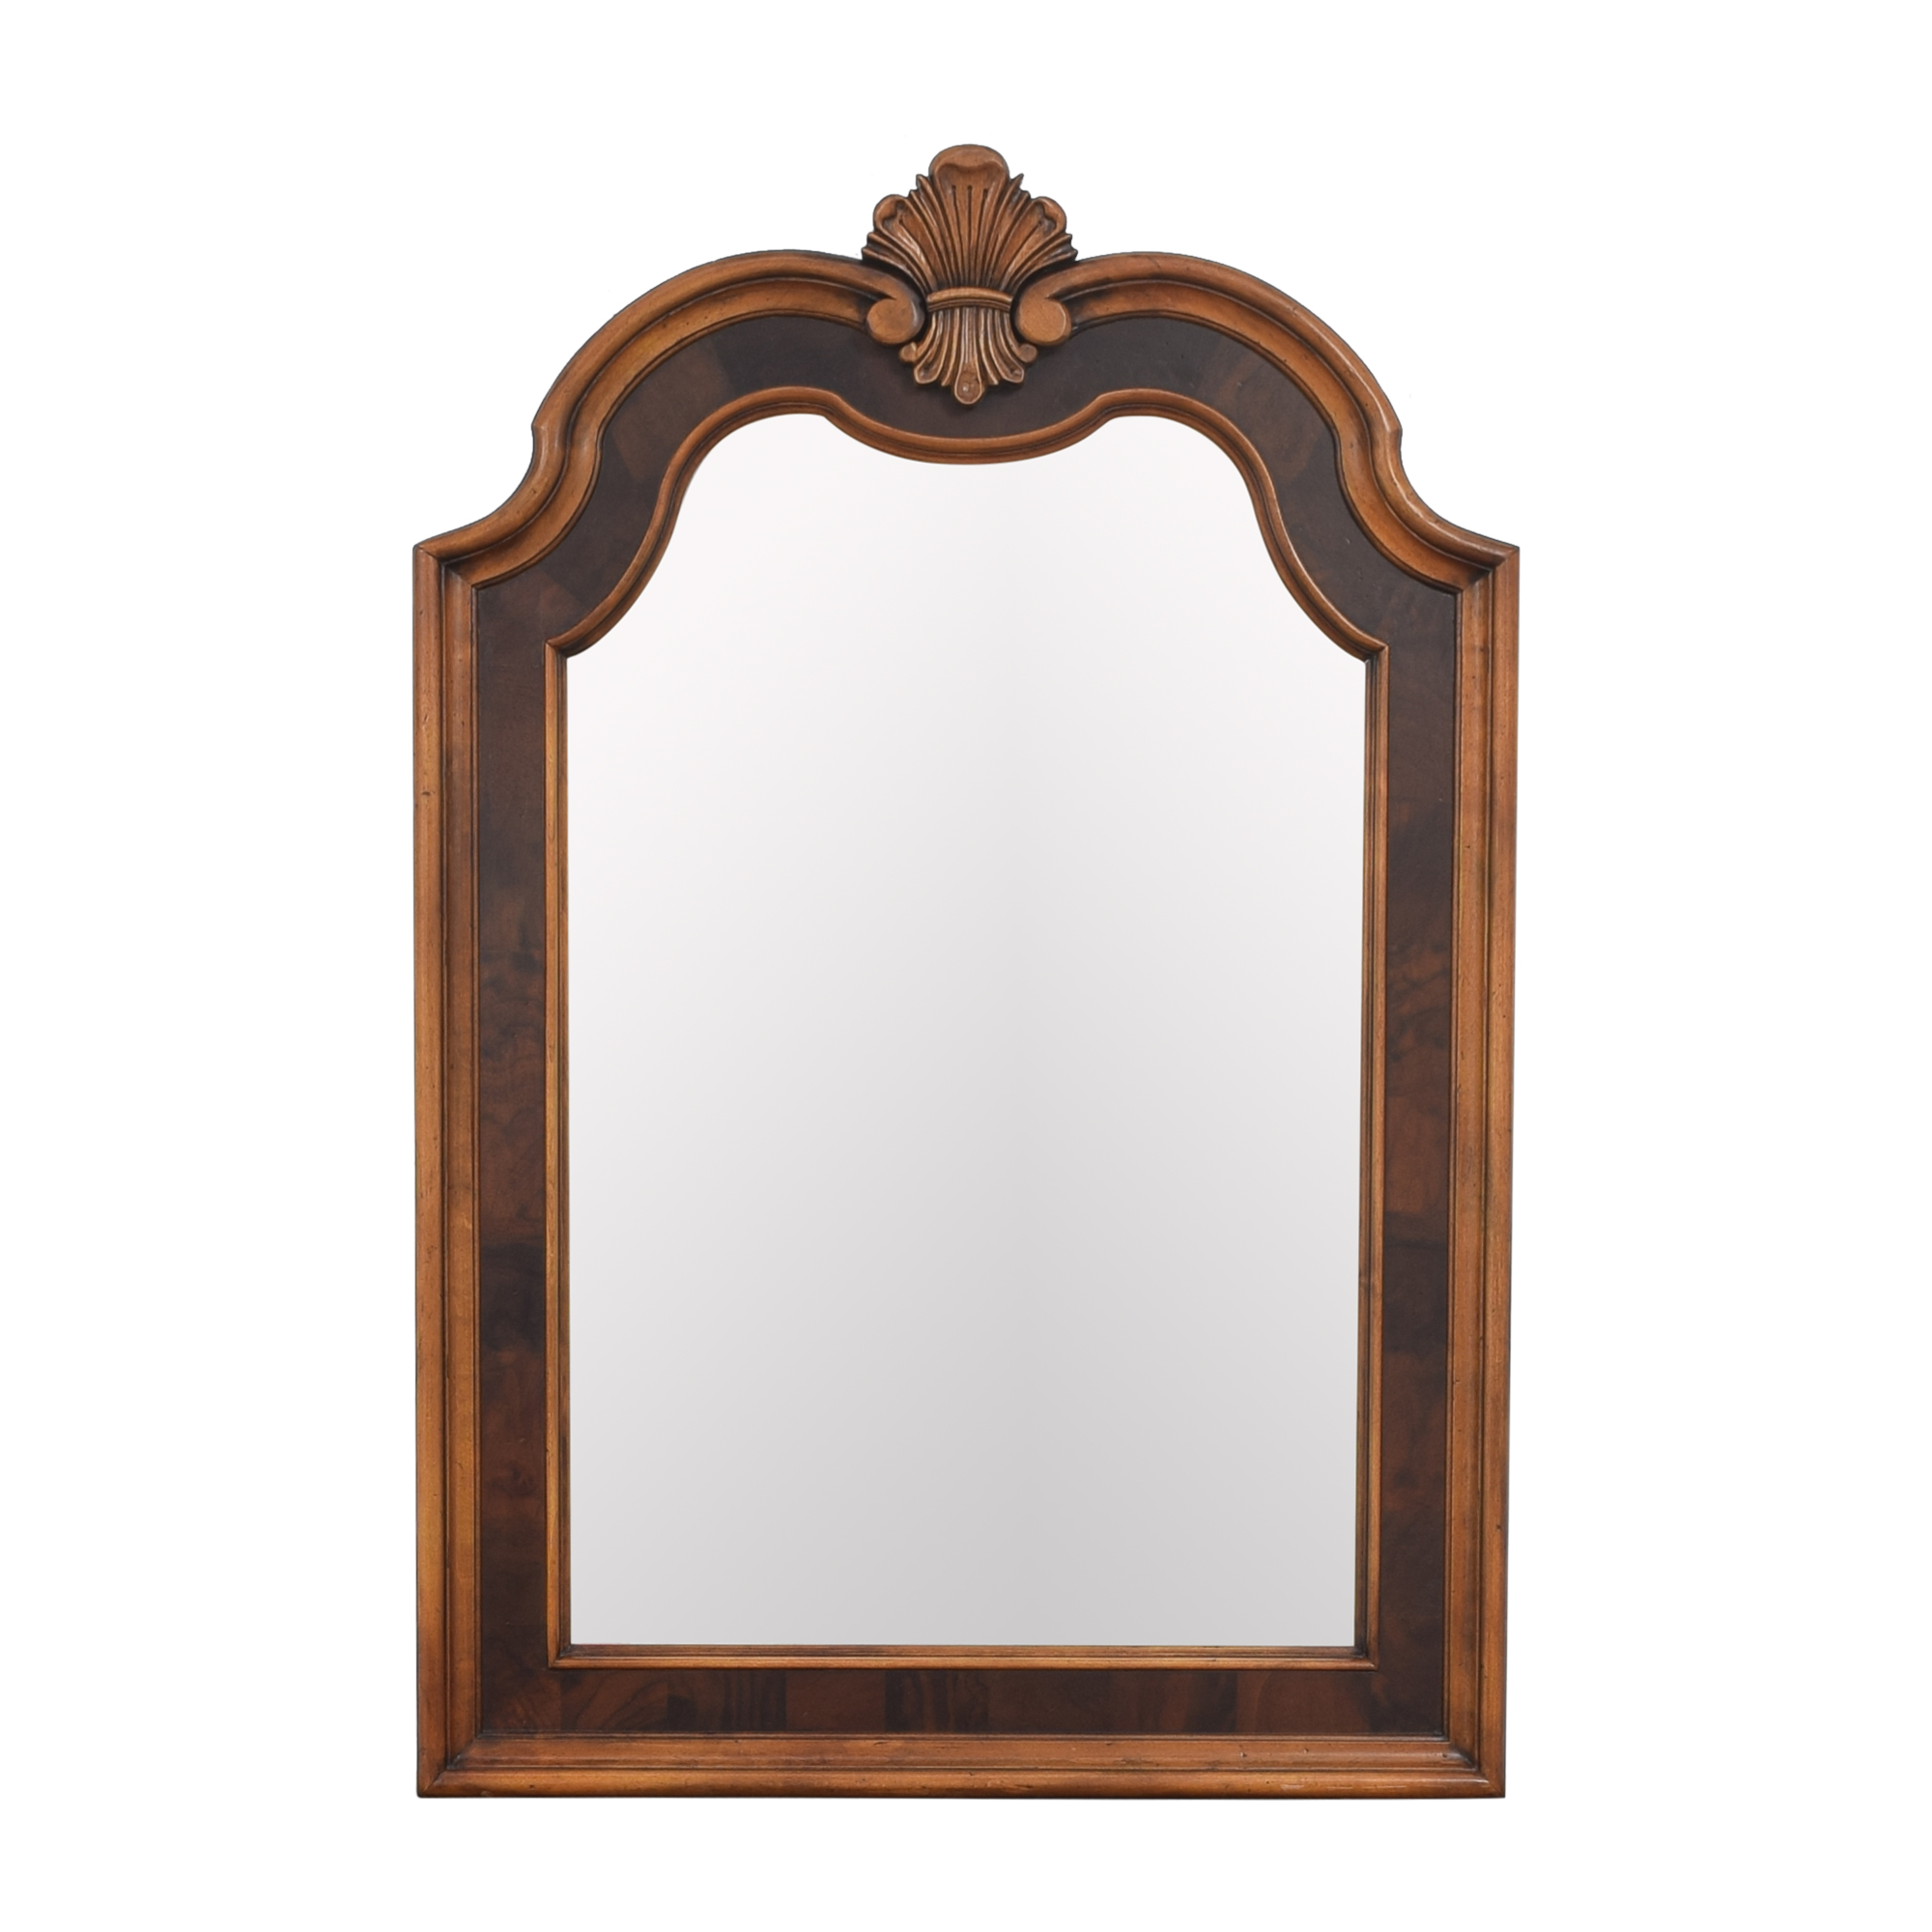 Ethan Allen Ethan Allen Tuscany Collection Mirror pa